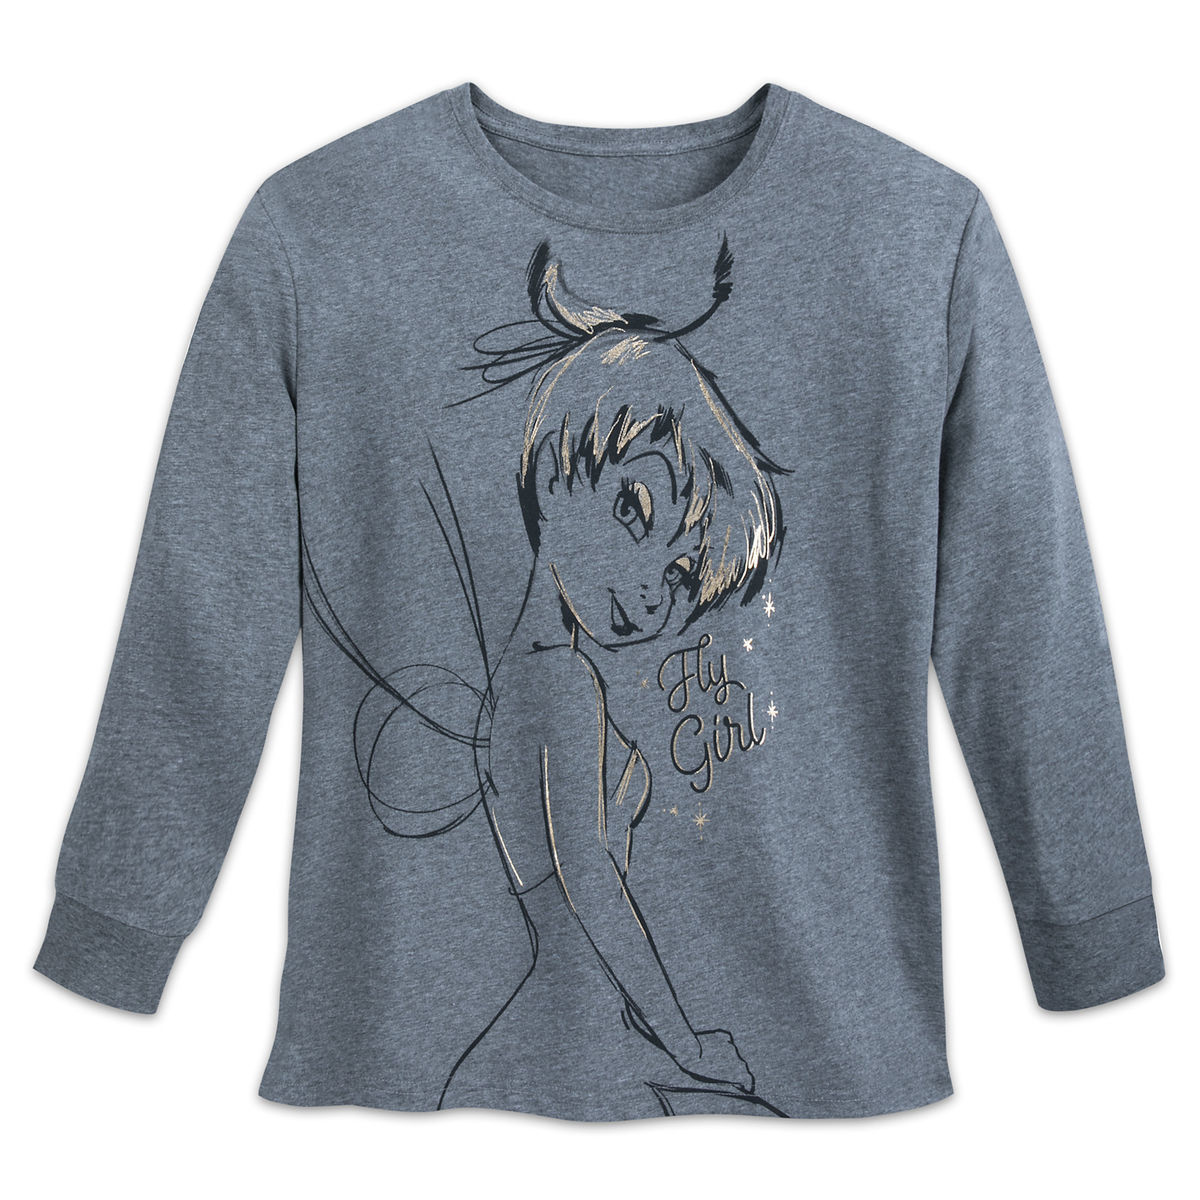 Tinker Bell ''Fly Girl'' T-Shirt for Women.jpeg